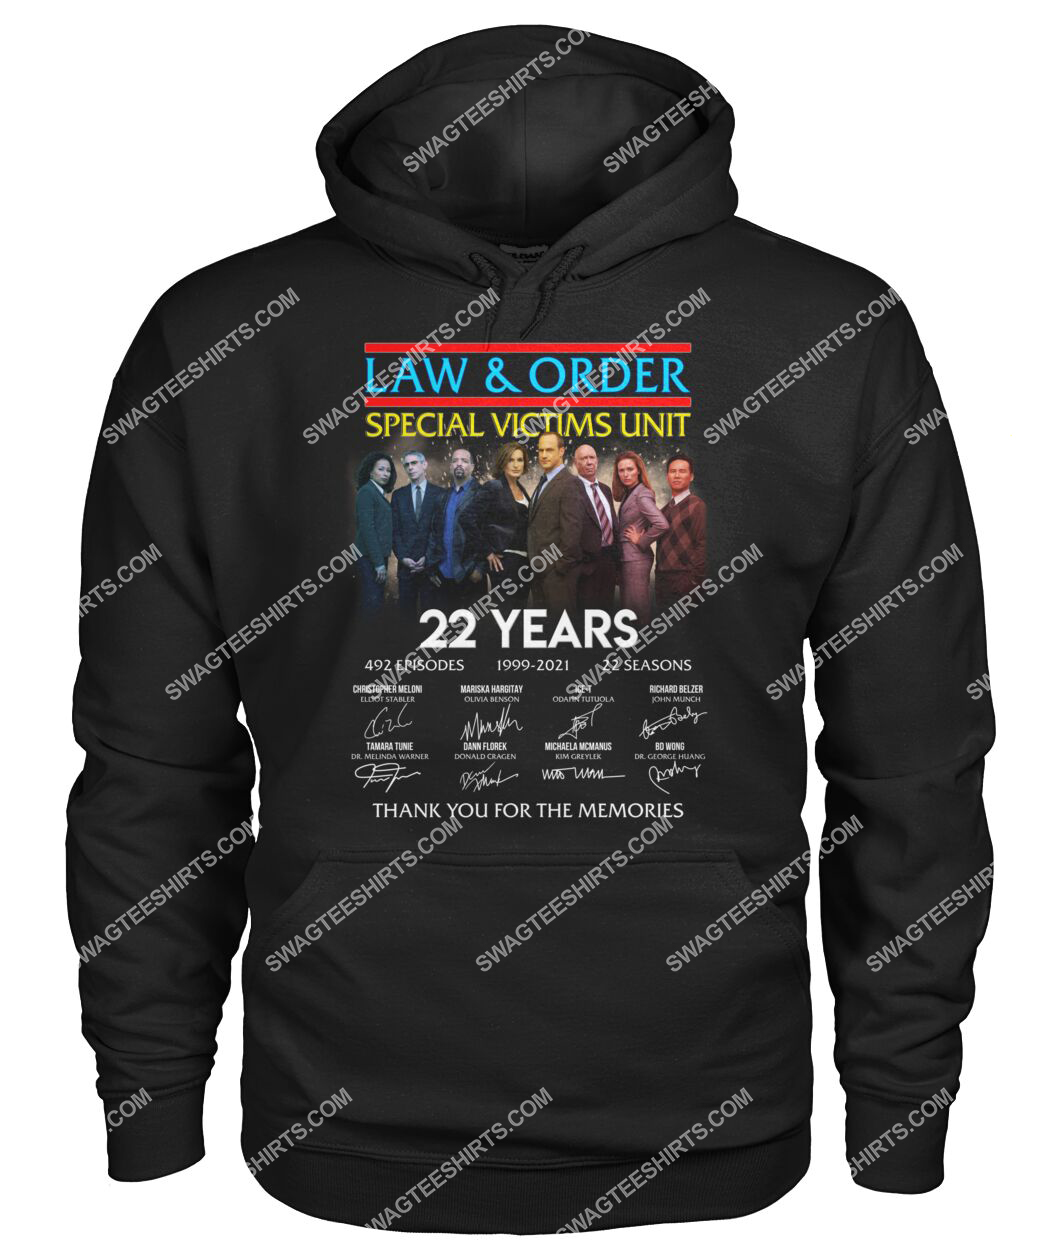 law and order 22 years thank you for memories signature hoodie 1